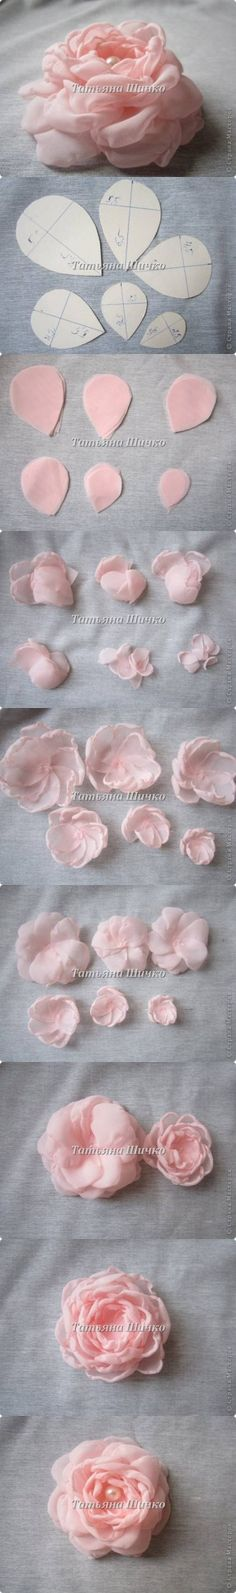 DIY Nylon Flower DIY Projects